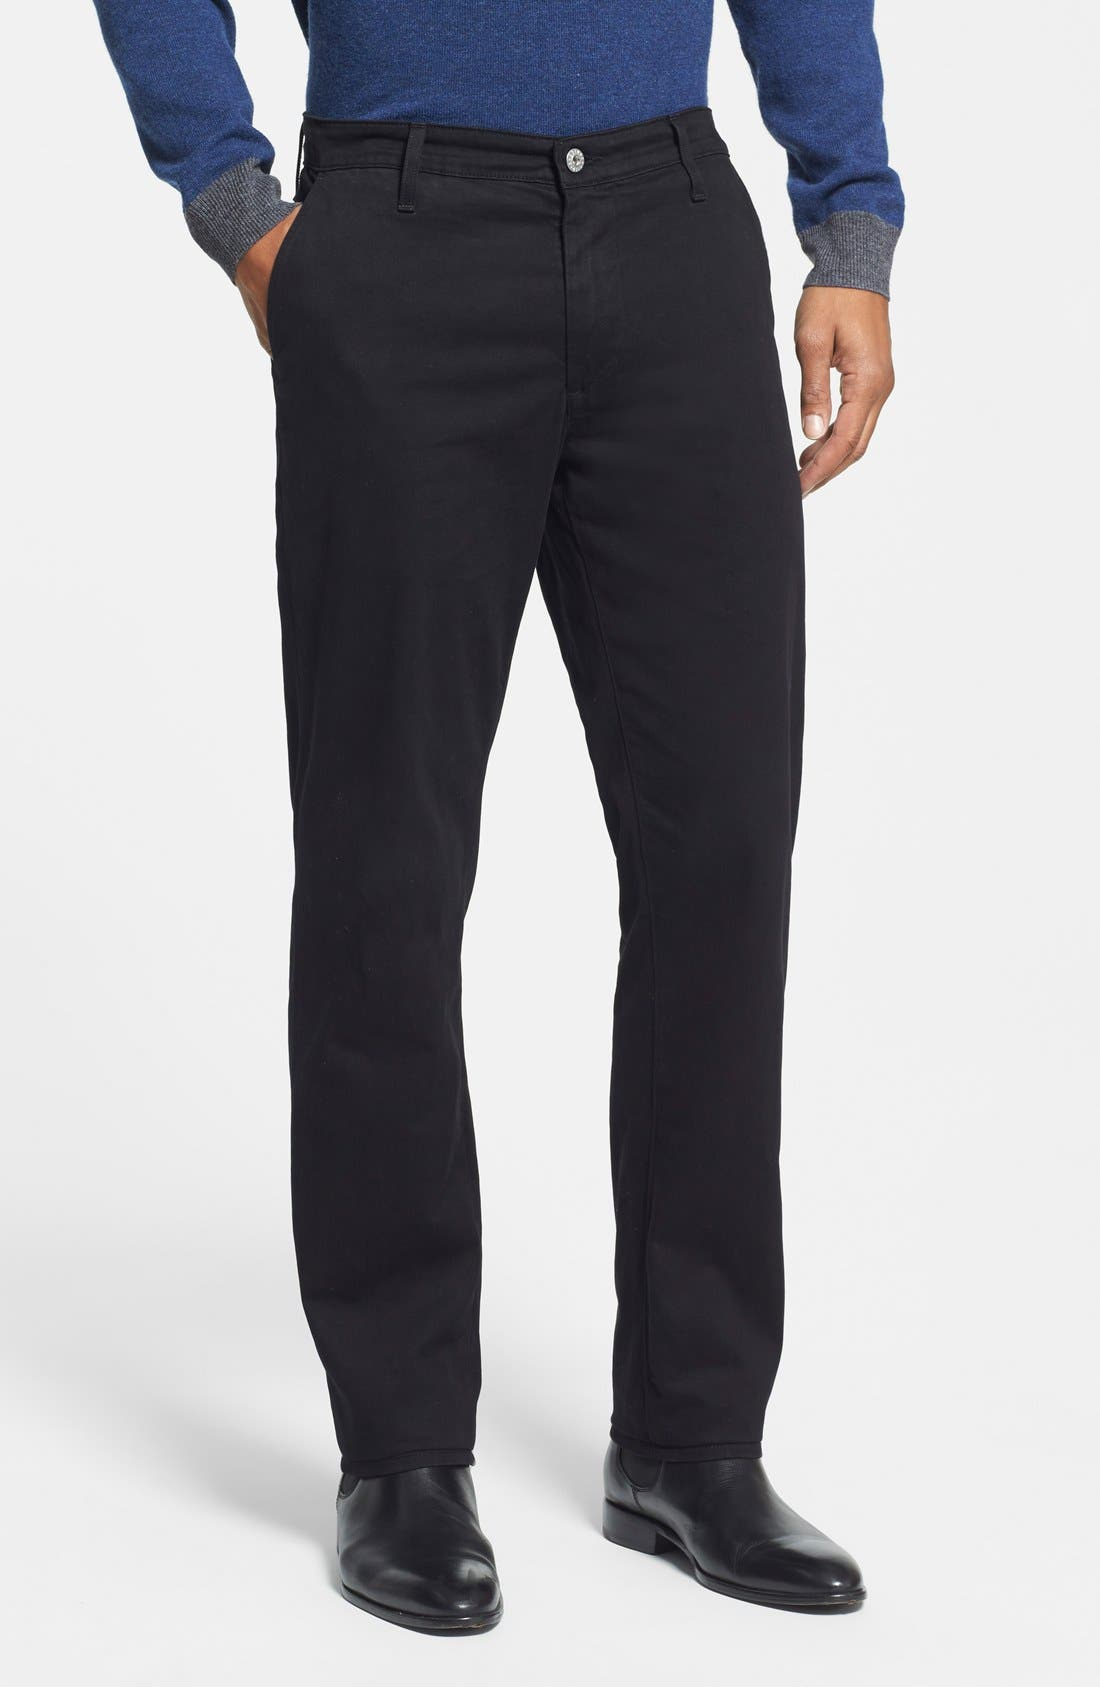 'The Lux' Tailored Straight Leg Chinos,                             Main thumbnail 1, color,                             Black